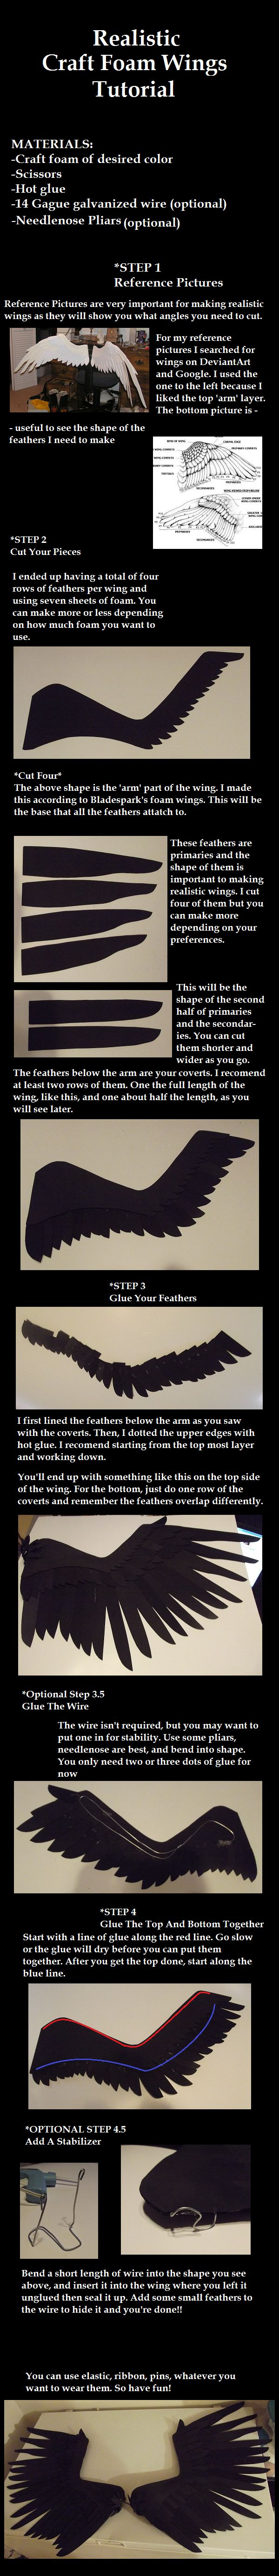 Realistic Foam Wings Tutorial by Zexion-the-gamer.deviantart.com